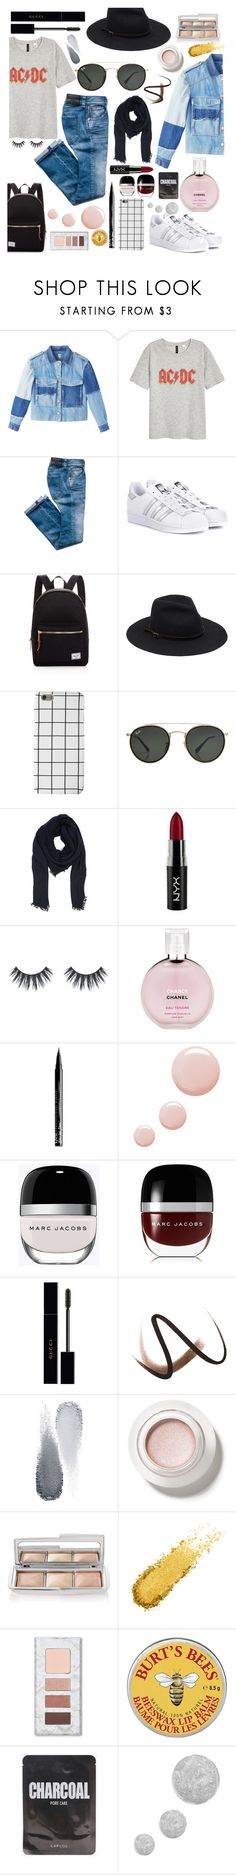 """""""My Girl"""" by simplymewithideas ❤ liked on Polyvore featuring Rebecca Taylor, H&M, adidas Originals, Herschel Supply Co., Ray-Ban, Faliero Sarti, NYX, Chanel, Topshop and Marc Jacobs"""